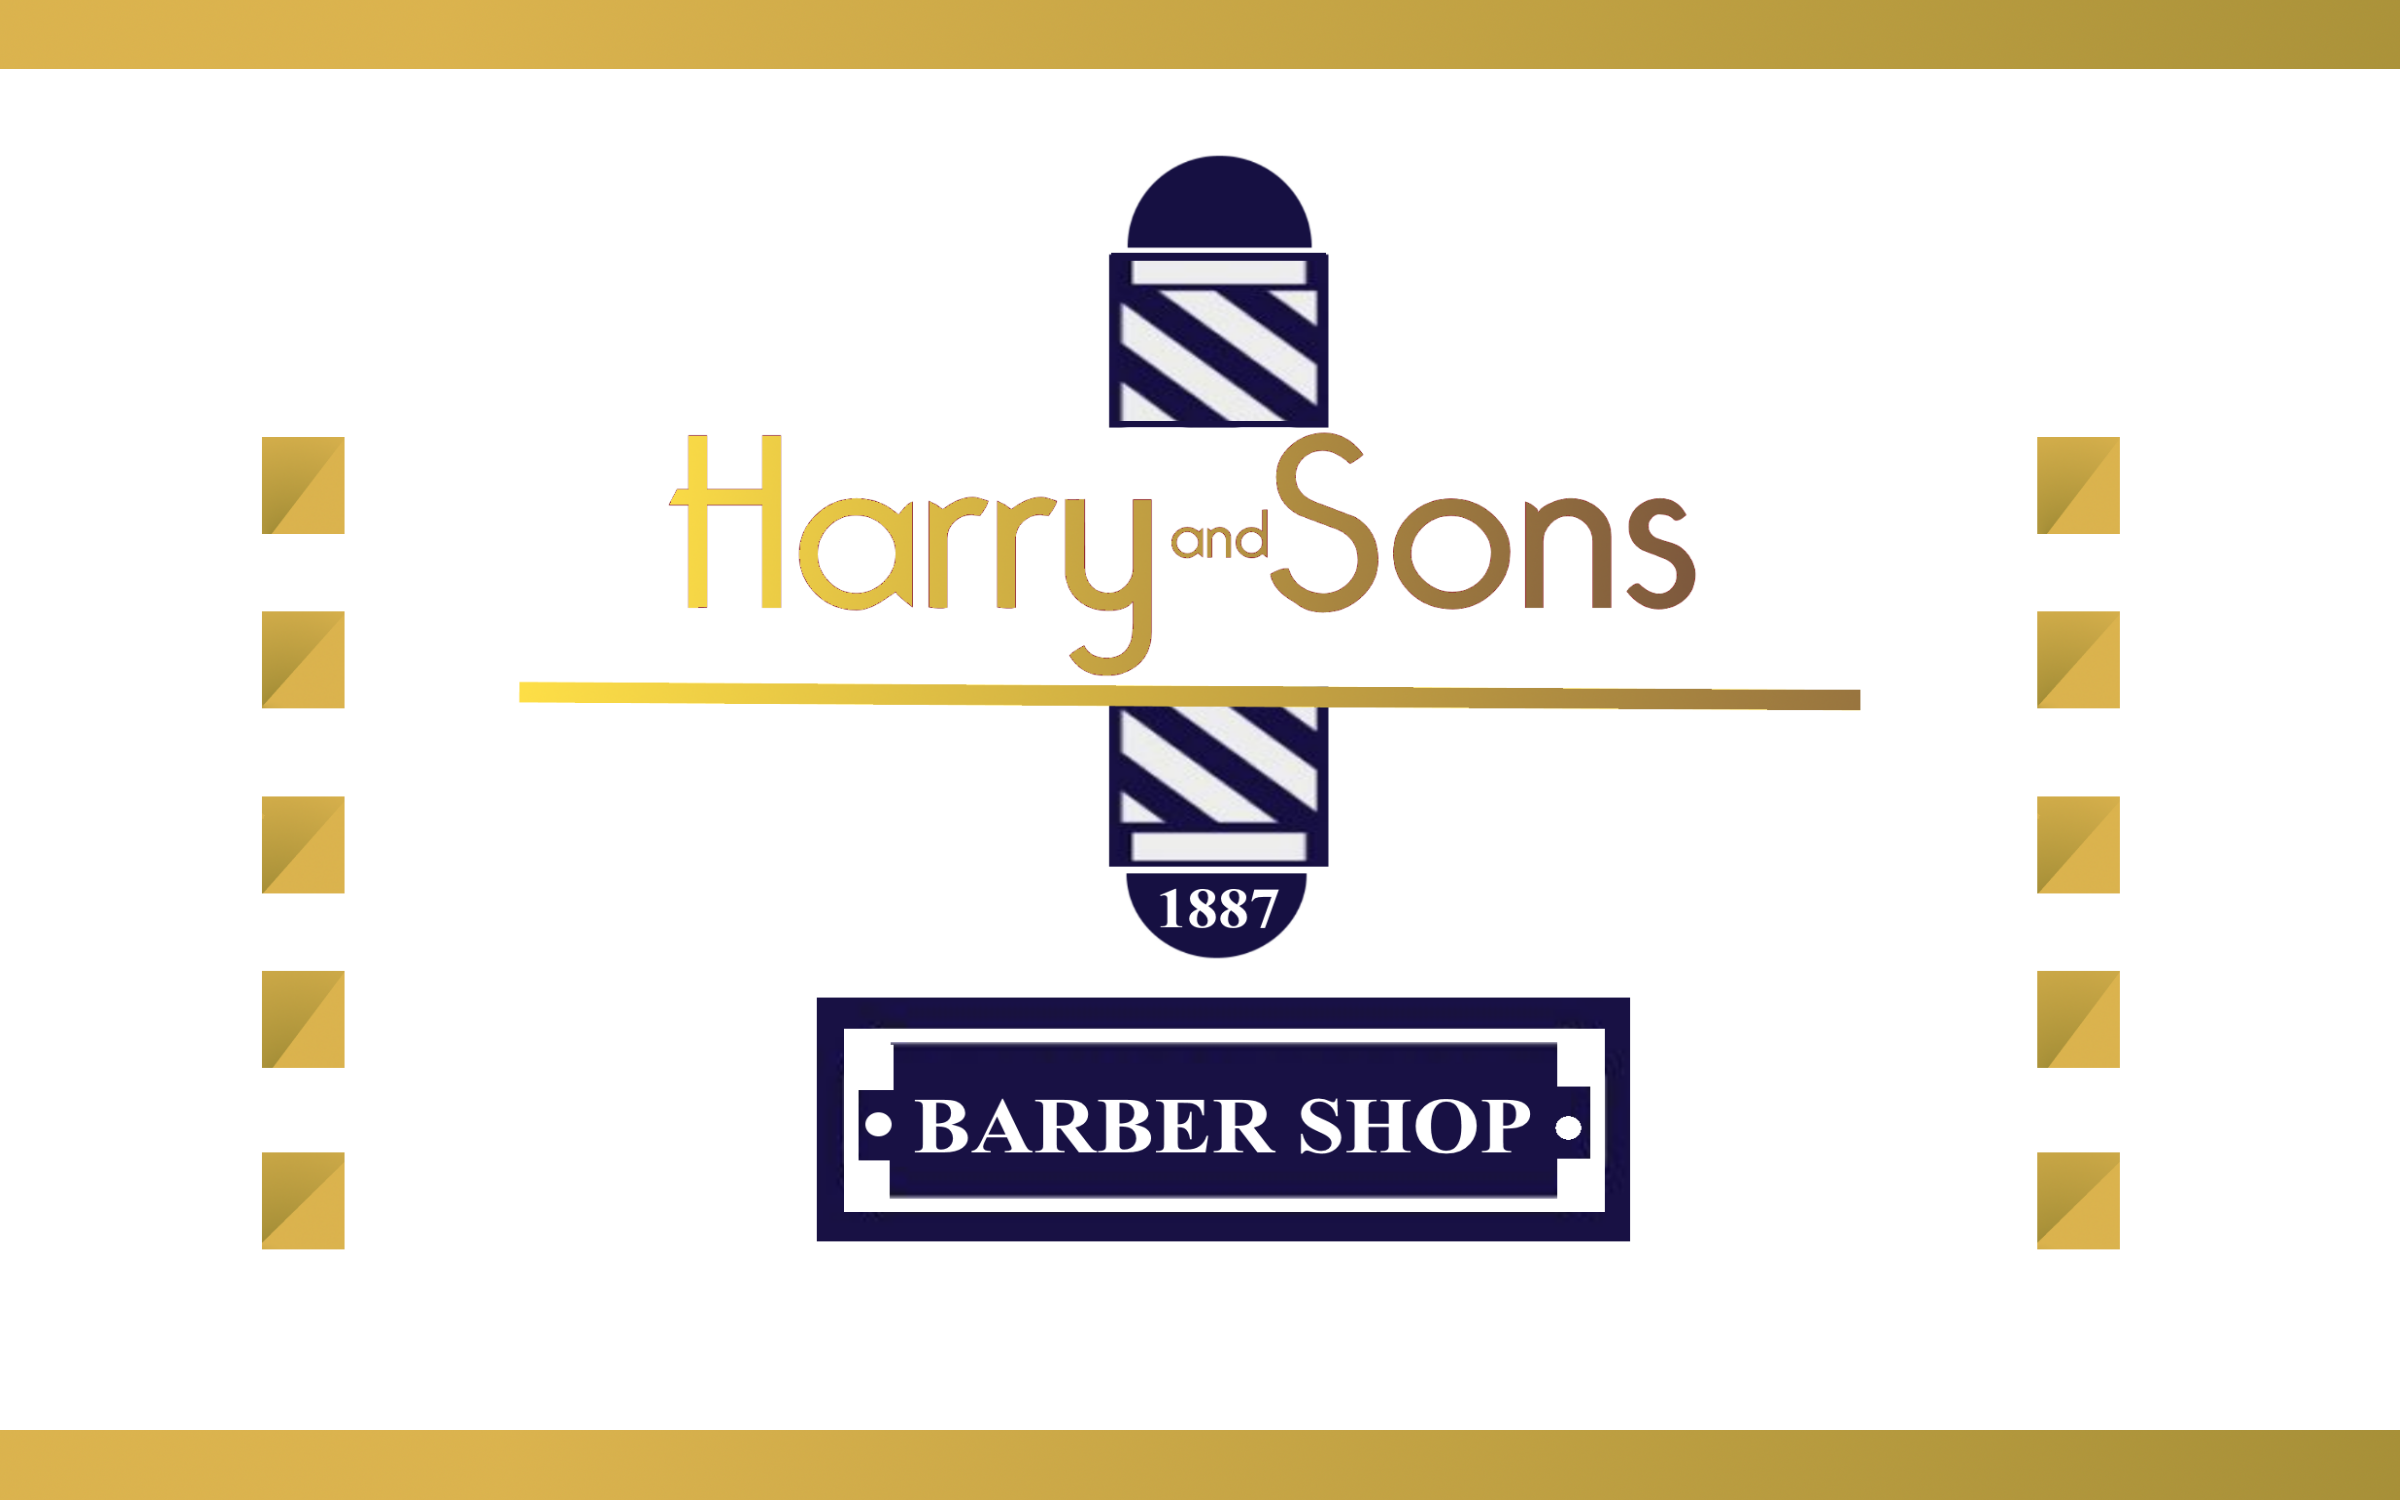 Logo Design by Roberto Bassi - Entry No. 52 in the Logo Design Contest Captivating Logo Design for Harry and Sons Barber.